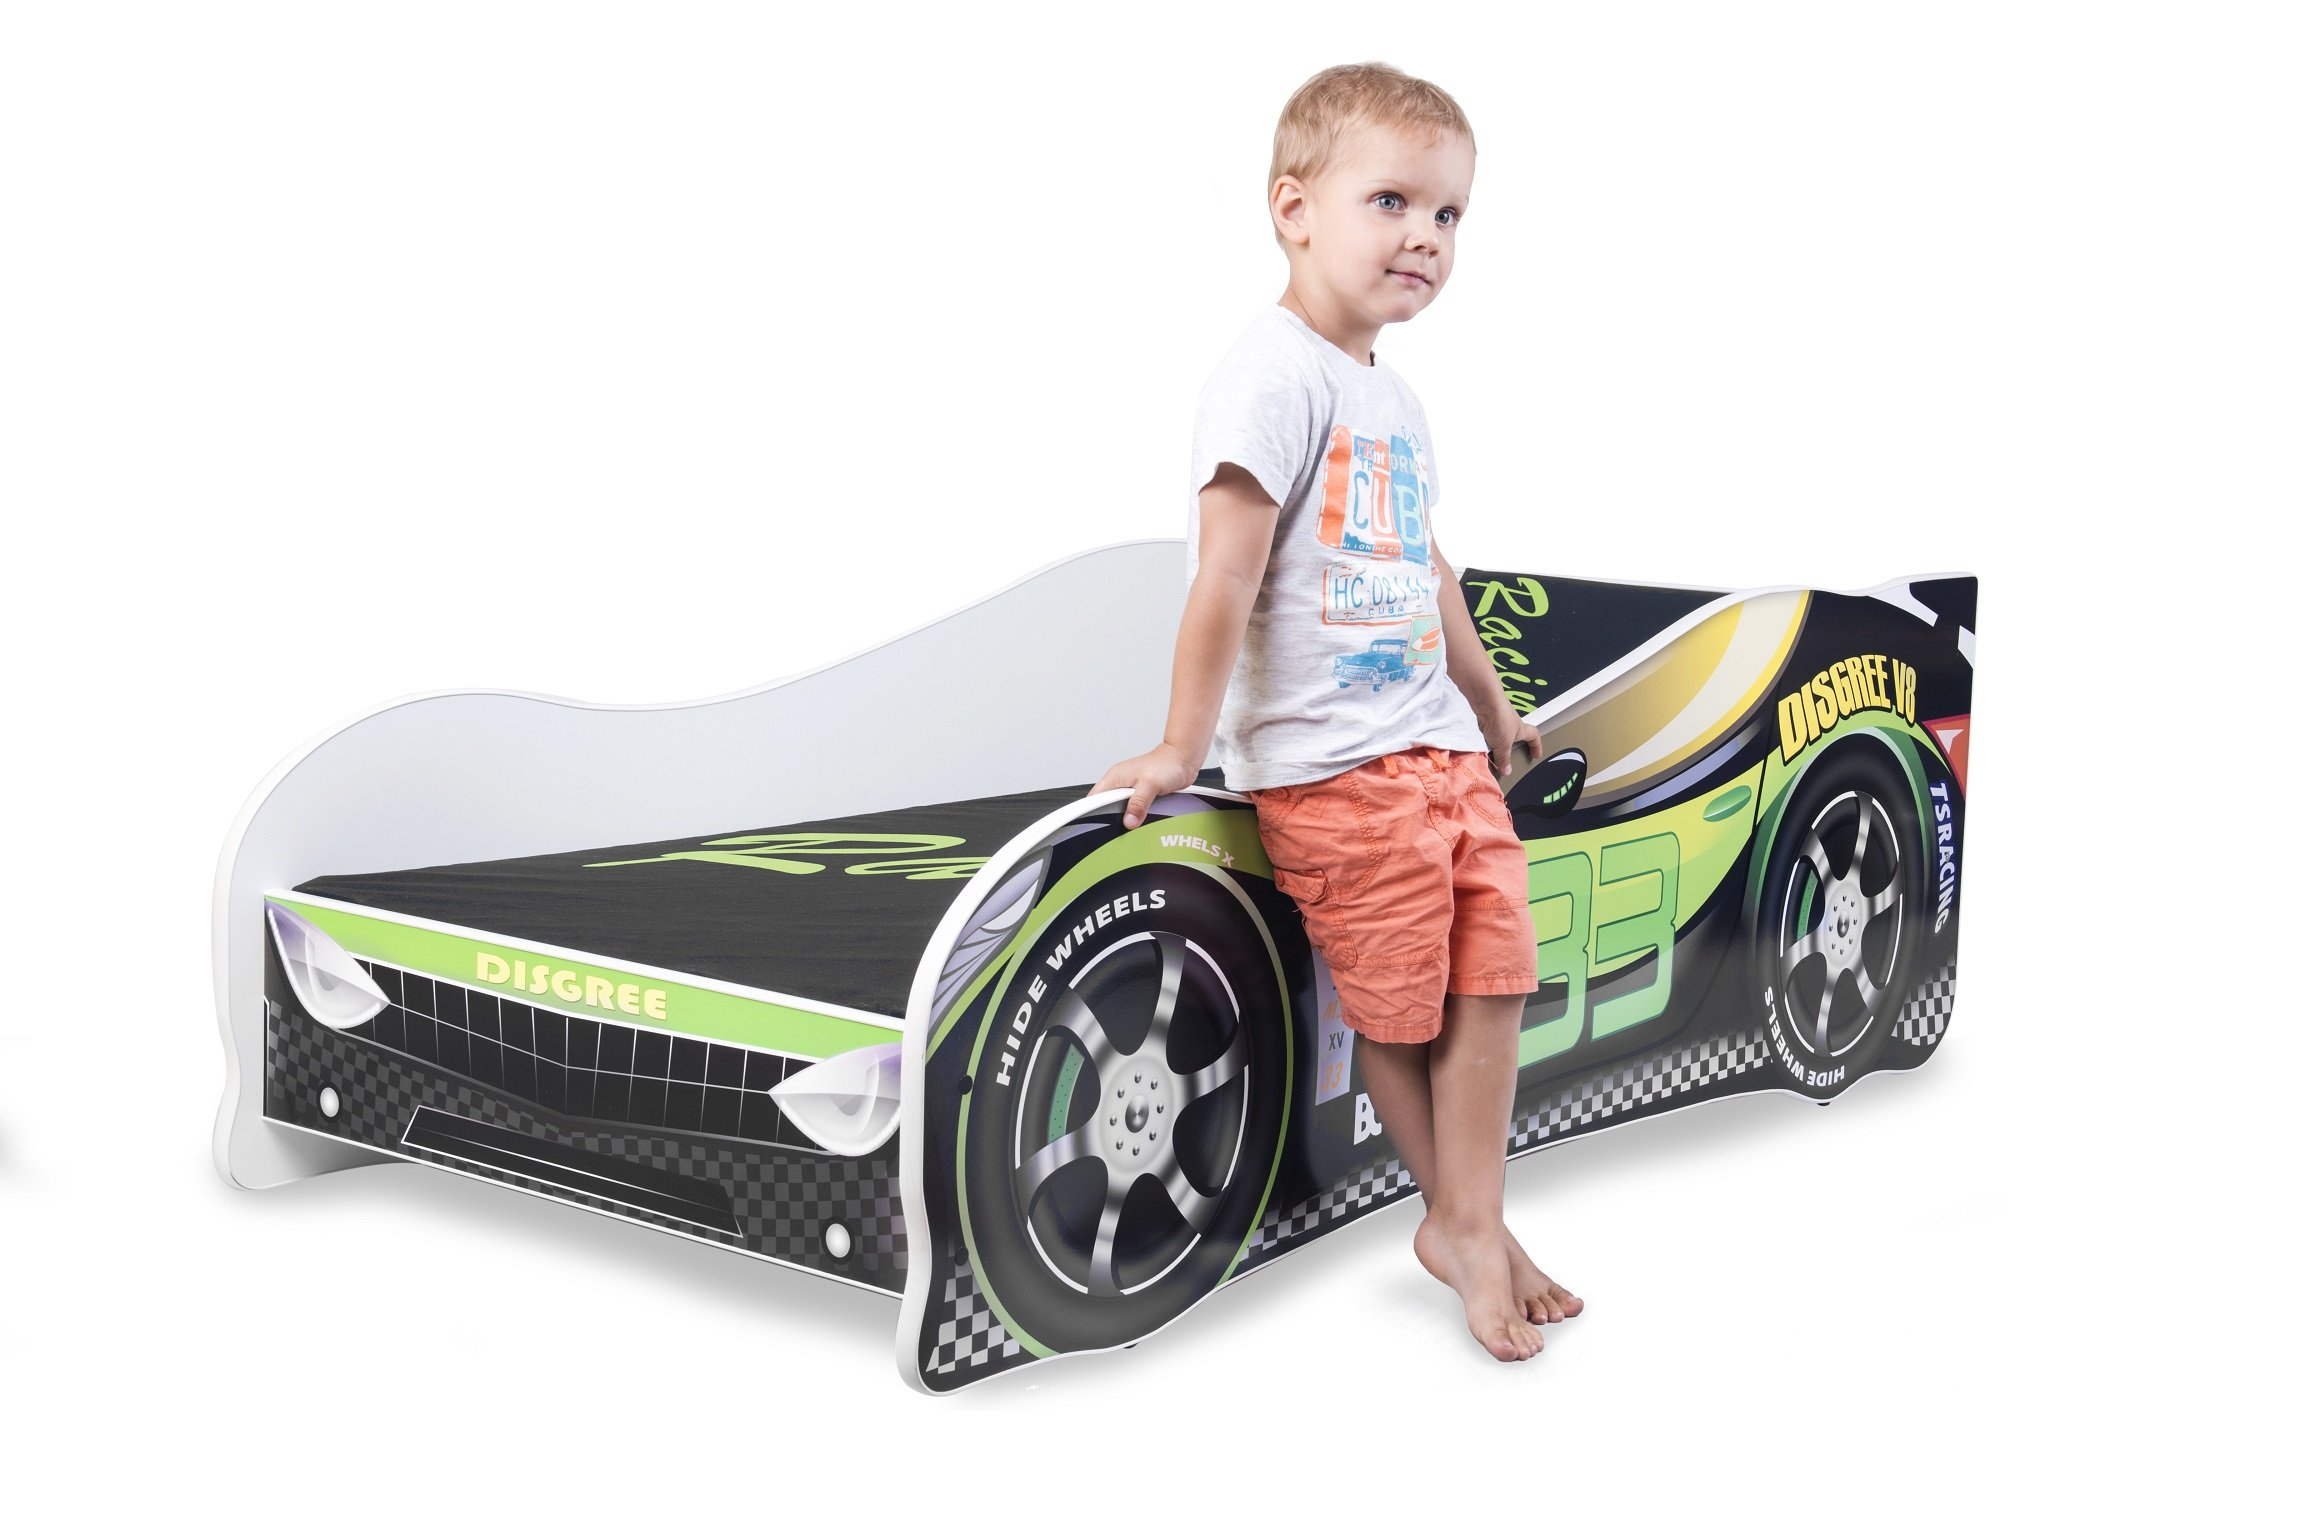 Sale +++ The Best Quality Baby Kids Bed Toddler Car Junior Bed with Mattress 140 x 70 cm 160 x 80 cm 180 x 80 cm (140x70cm Untill 5 Jears, Green) Nobiko Kids Bed + Foam Mattress in 3 Sizes: 140 x 70 cm untill 5 jears 160 x 80 cm untill 8 jears 180 x 80 cm untill 12 jears Greengard Gold - Product certified for law chemical emissions Ecologo - Product certified for reduced environmental impact 5